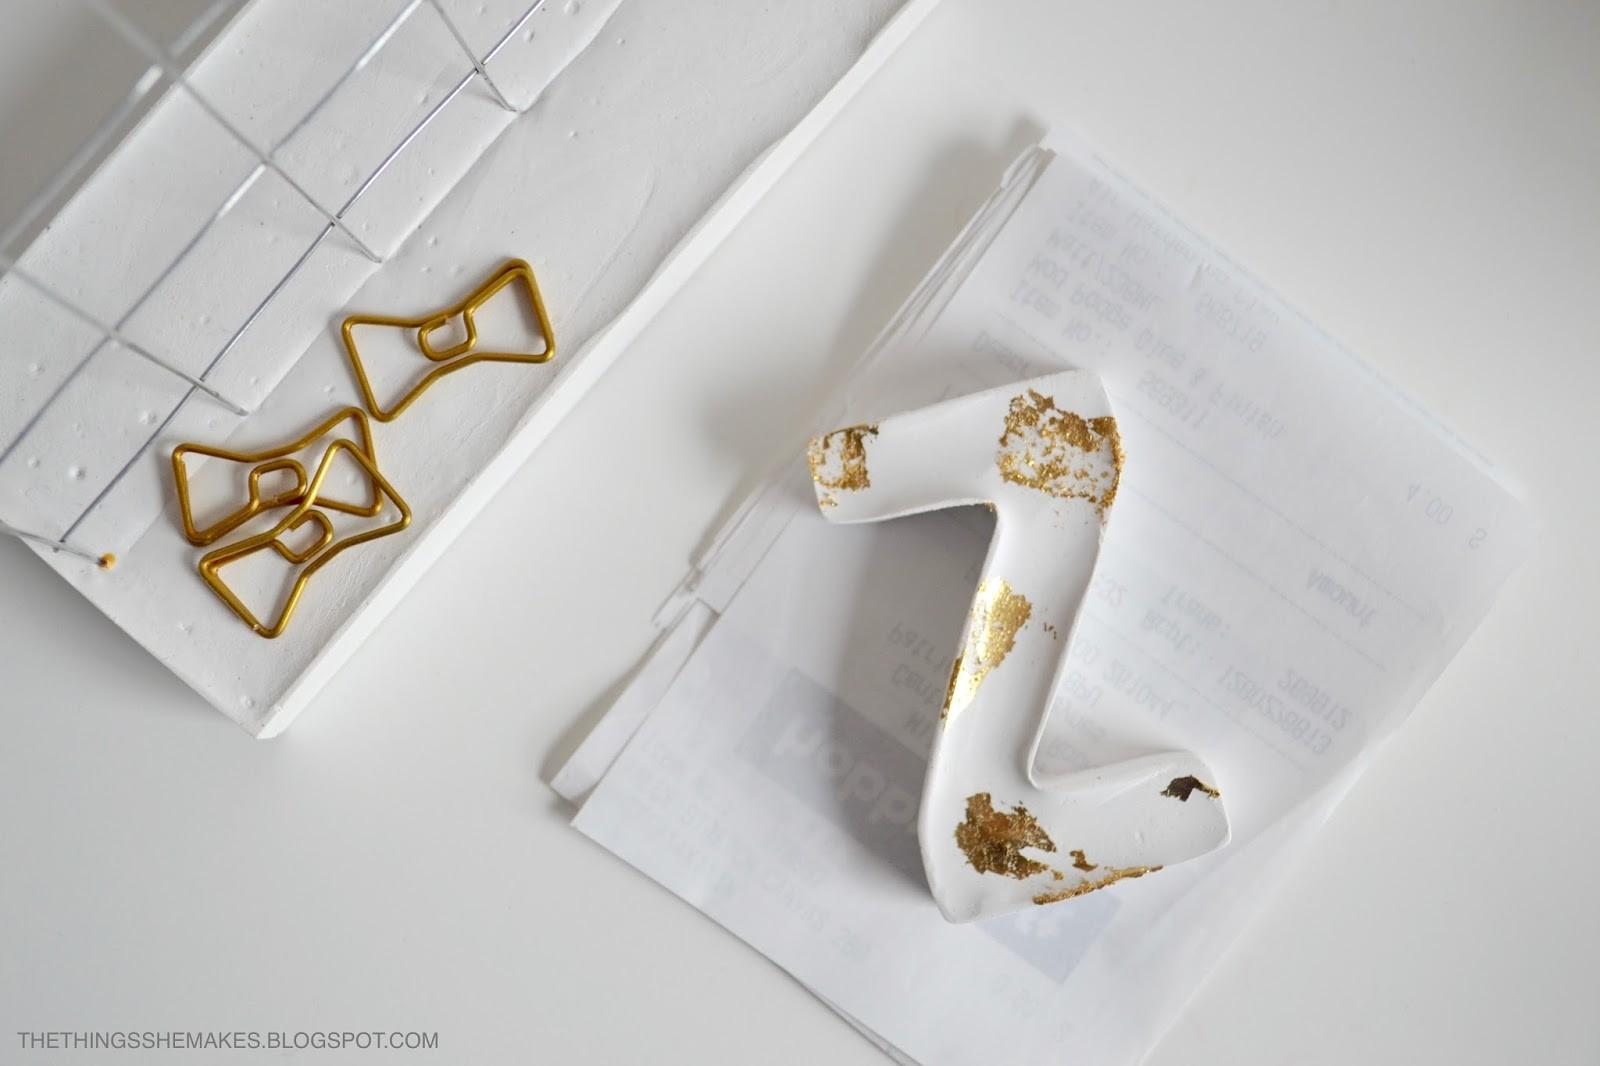 Diy Home Decor Decorative Letters Things She Makes